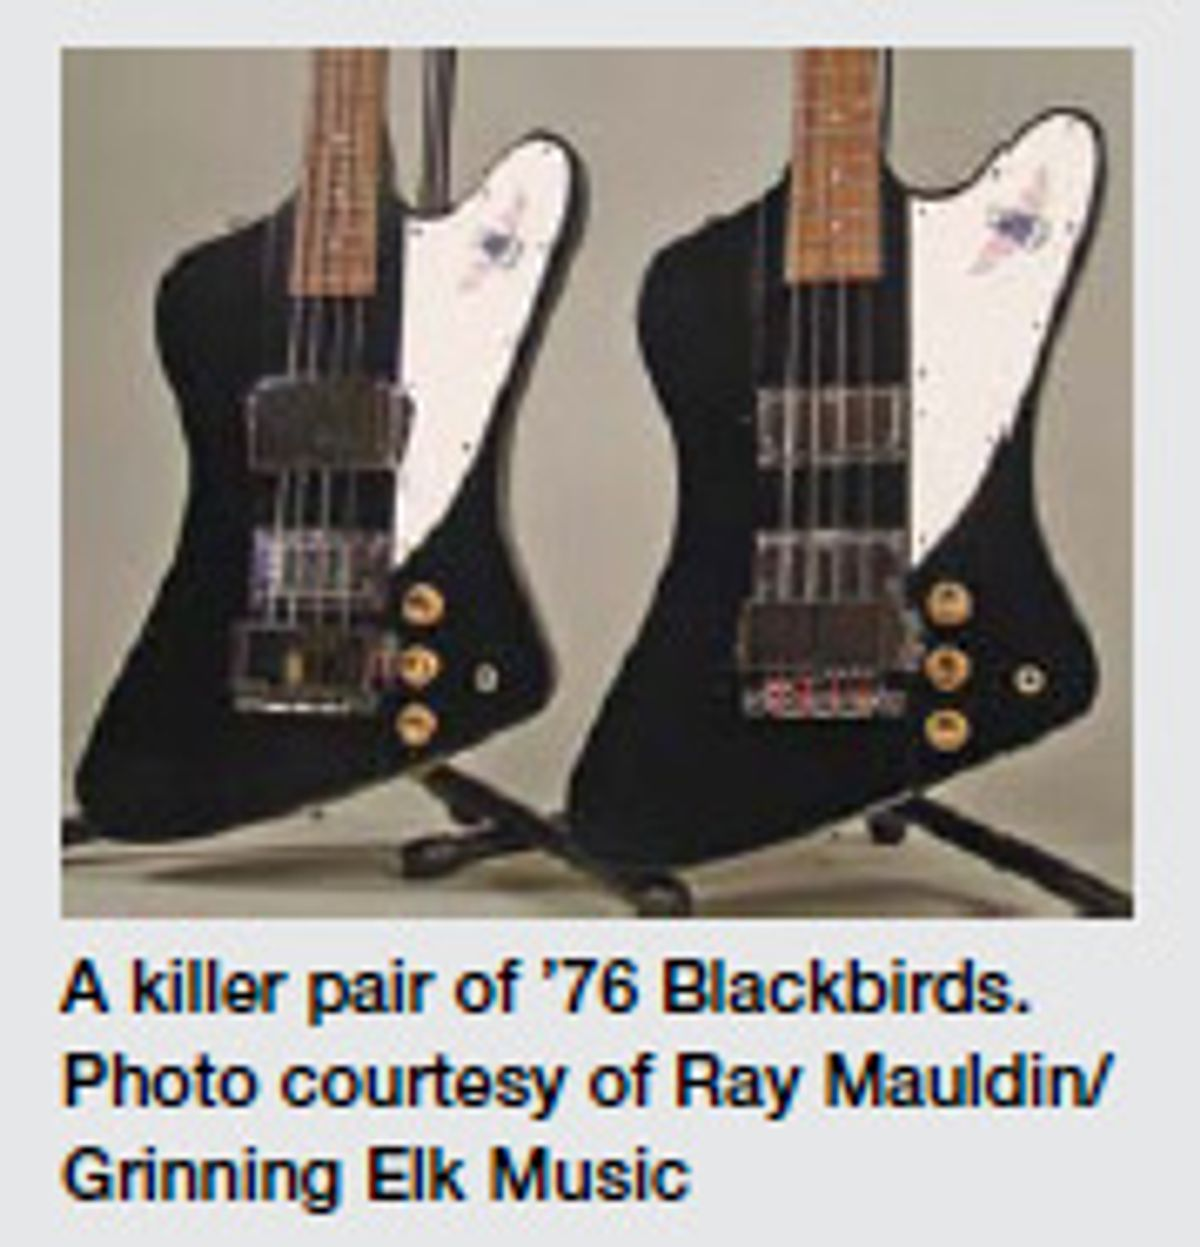 The Gibson Thunderbird—One of the Greatest!